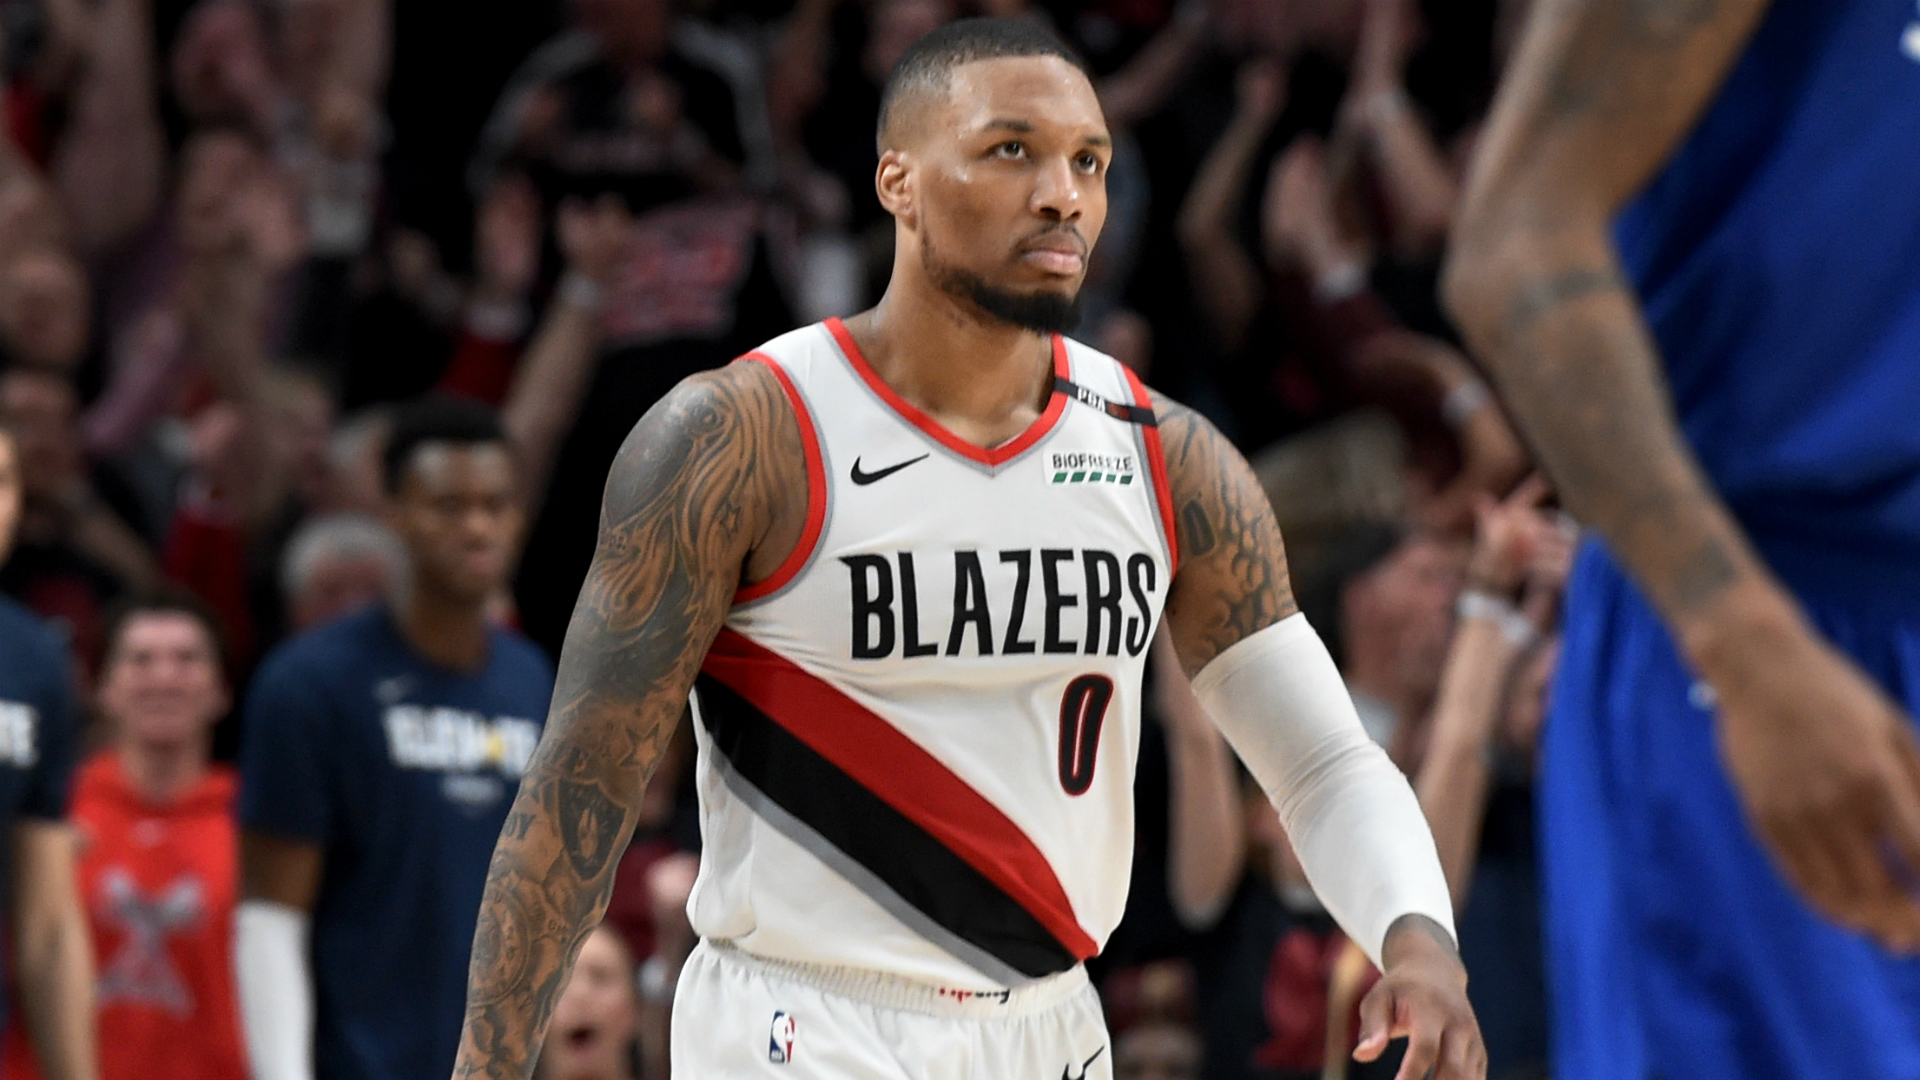 Trail Blazers' Damian Lillard on load management: 'I don't think we have the luxury'